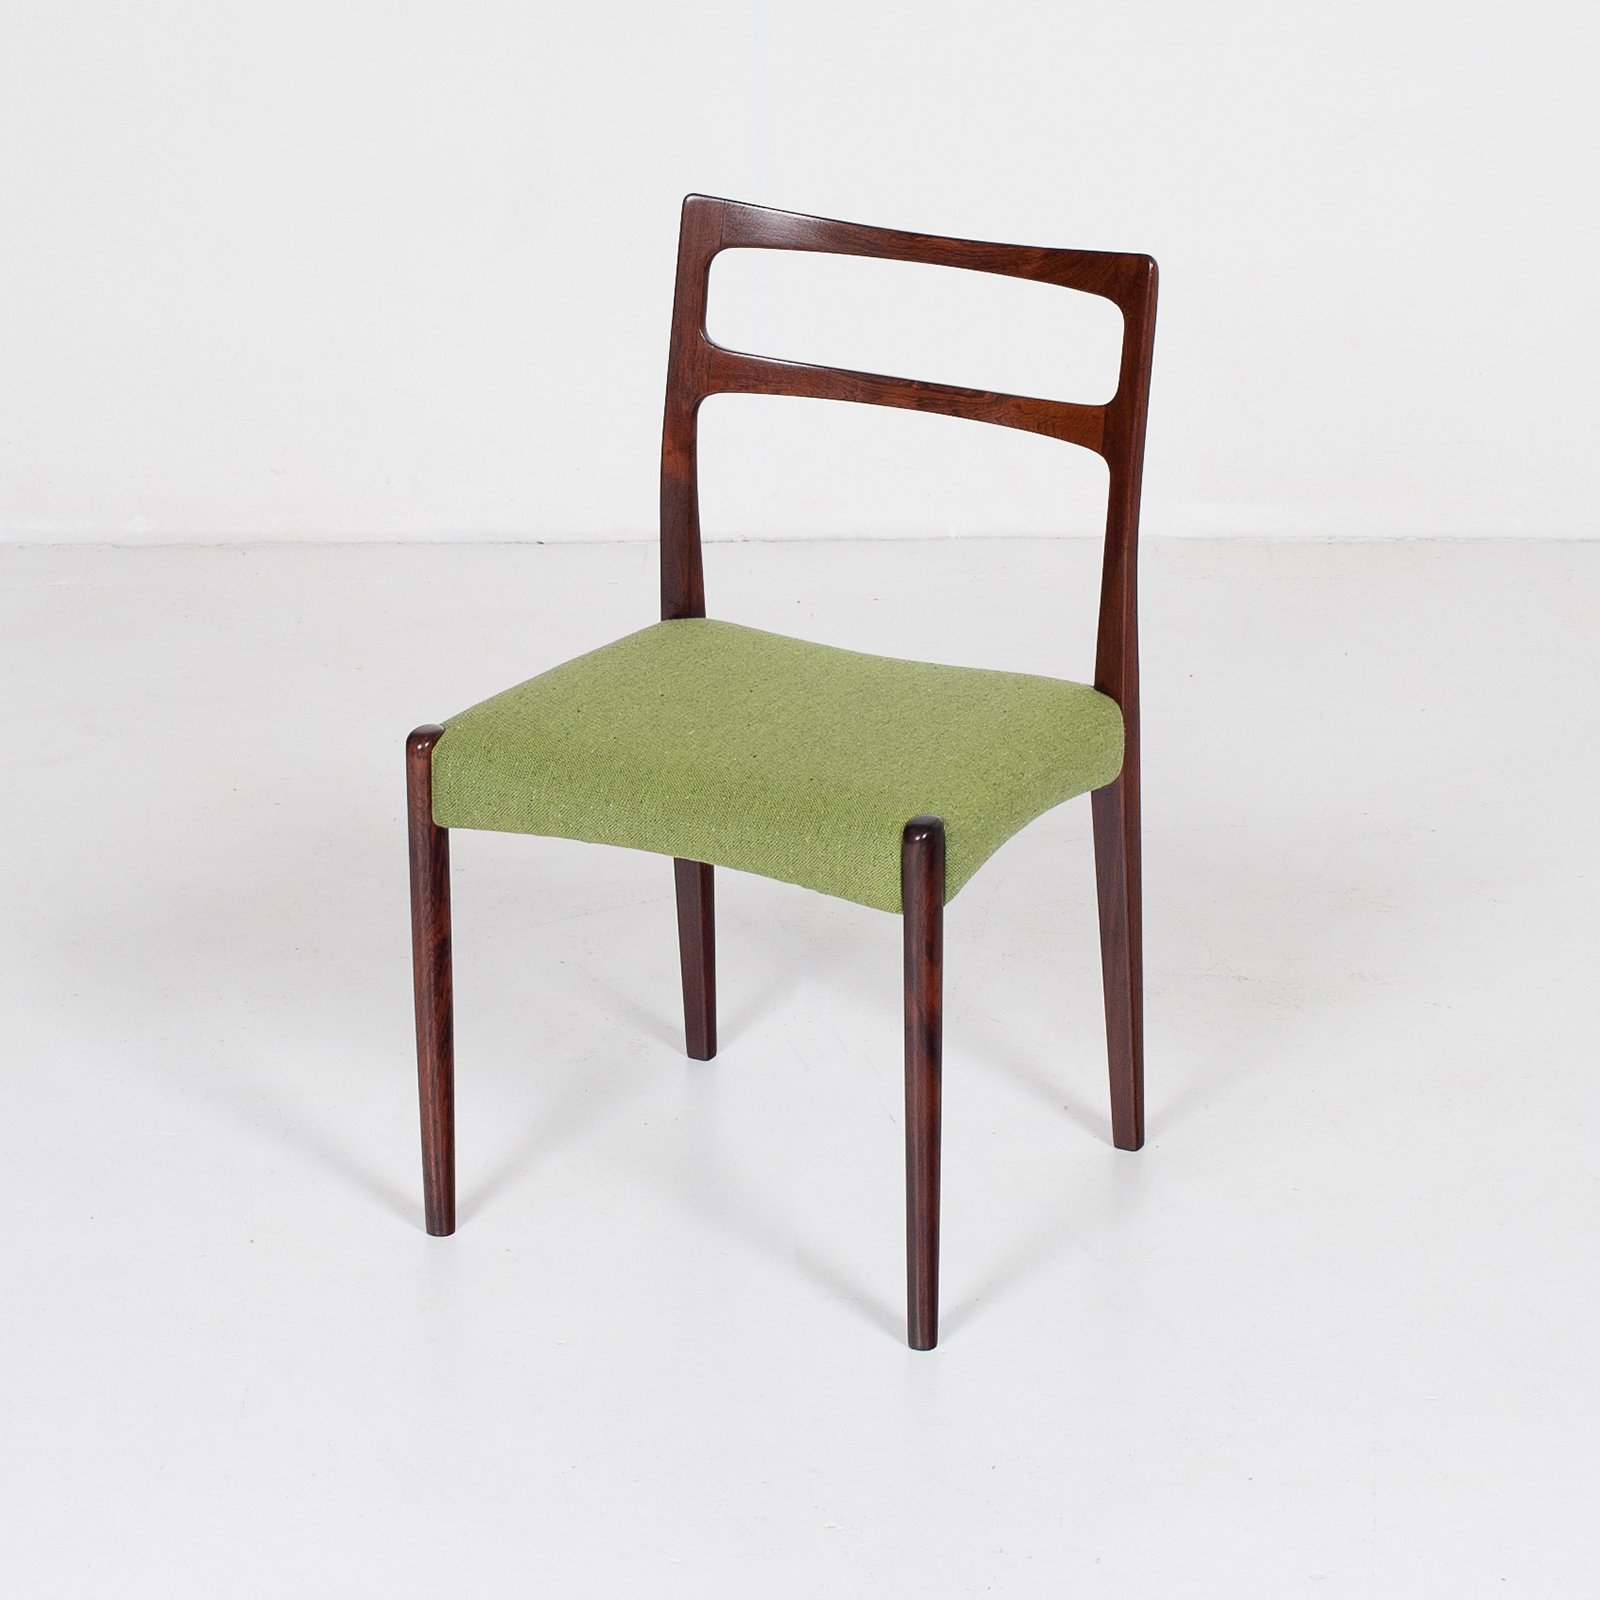 Set Of 4 Ladder Back Dining Chairs By Niels Moller In Rosewood, 1960s, Denmark26